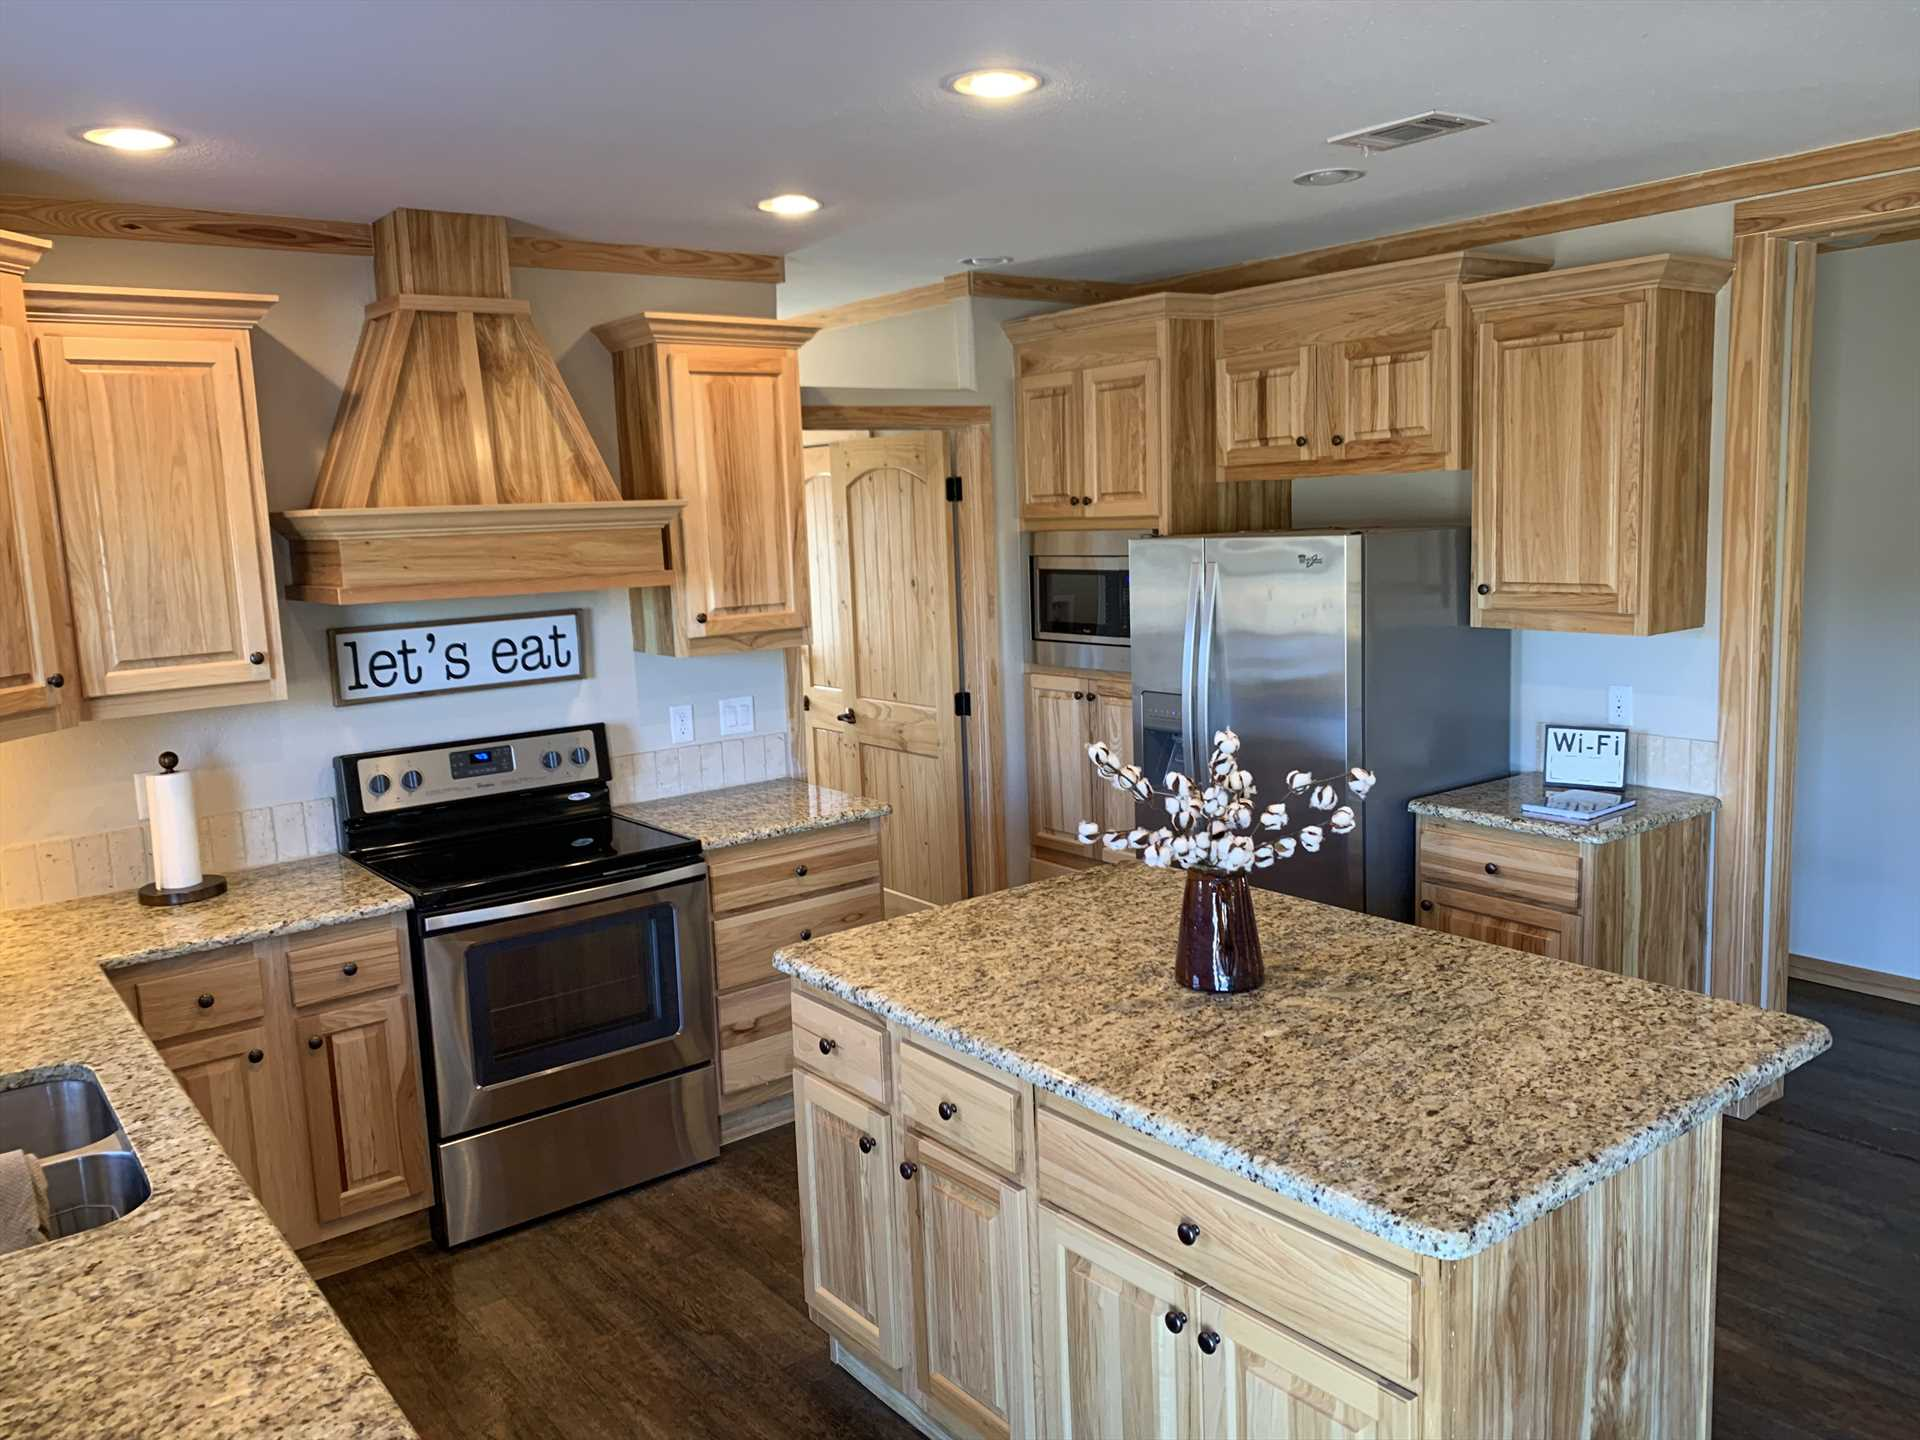 Tons of preparation space, modern appliances, and all the cookware and serving ware you'd ever need, make the big, beautiful kitchen a foodie's dream!.